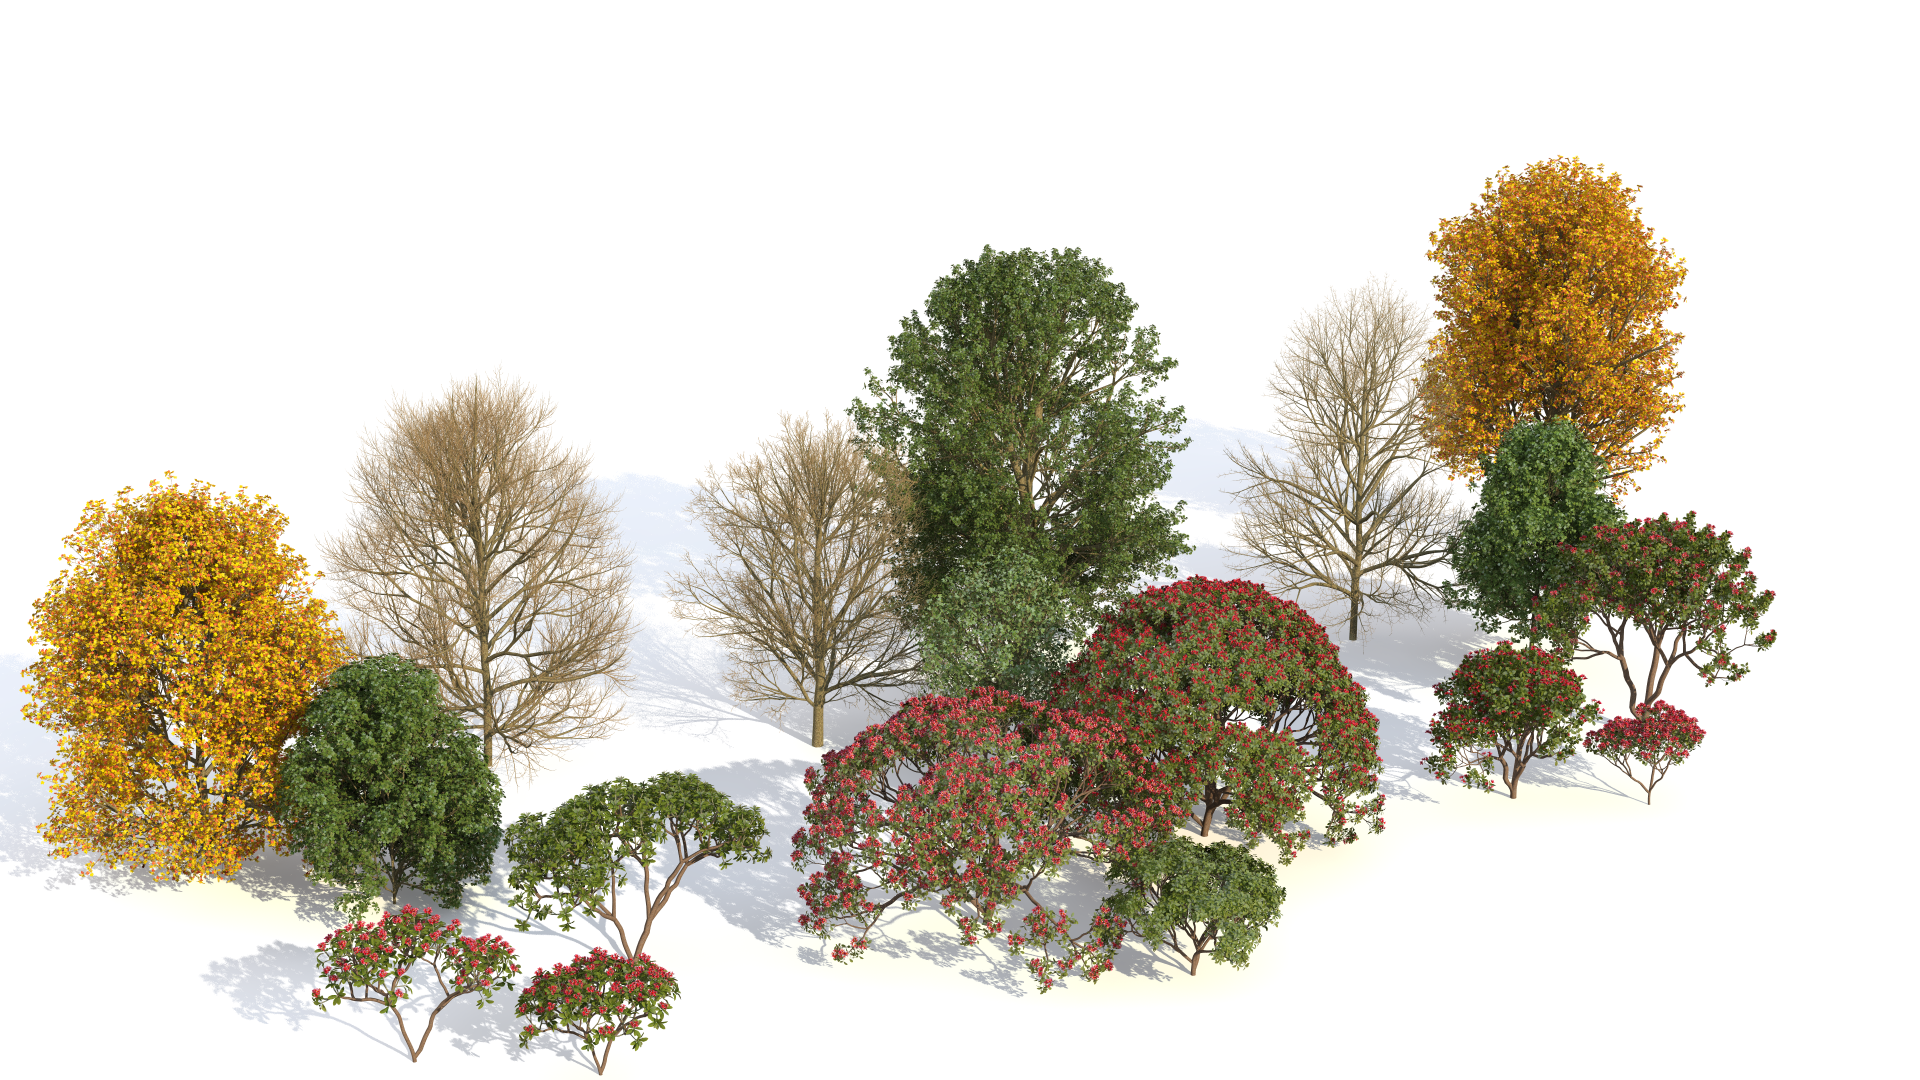 Rendering of Laubwerk Plants Kit Freebie trees by Jan Walter Schliep using CINEMA 4D and VRAYforC4D